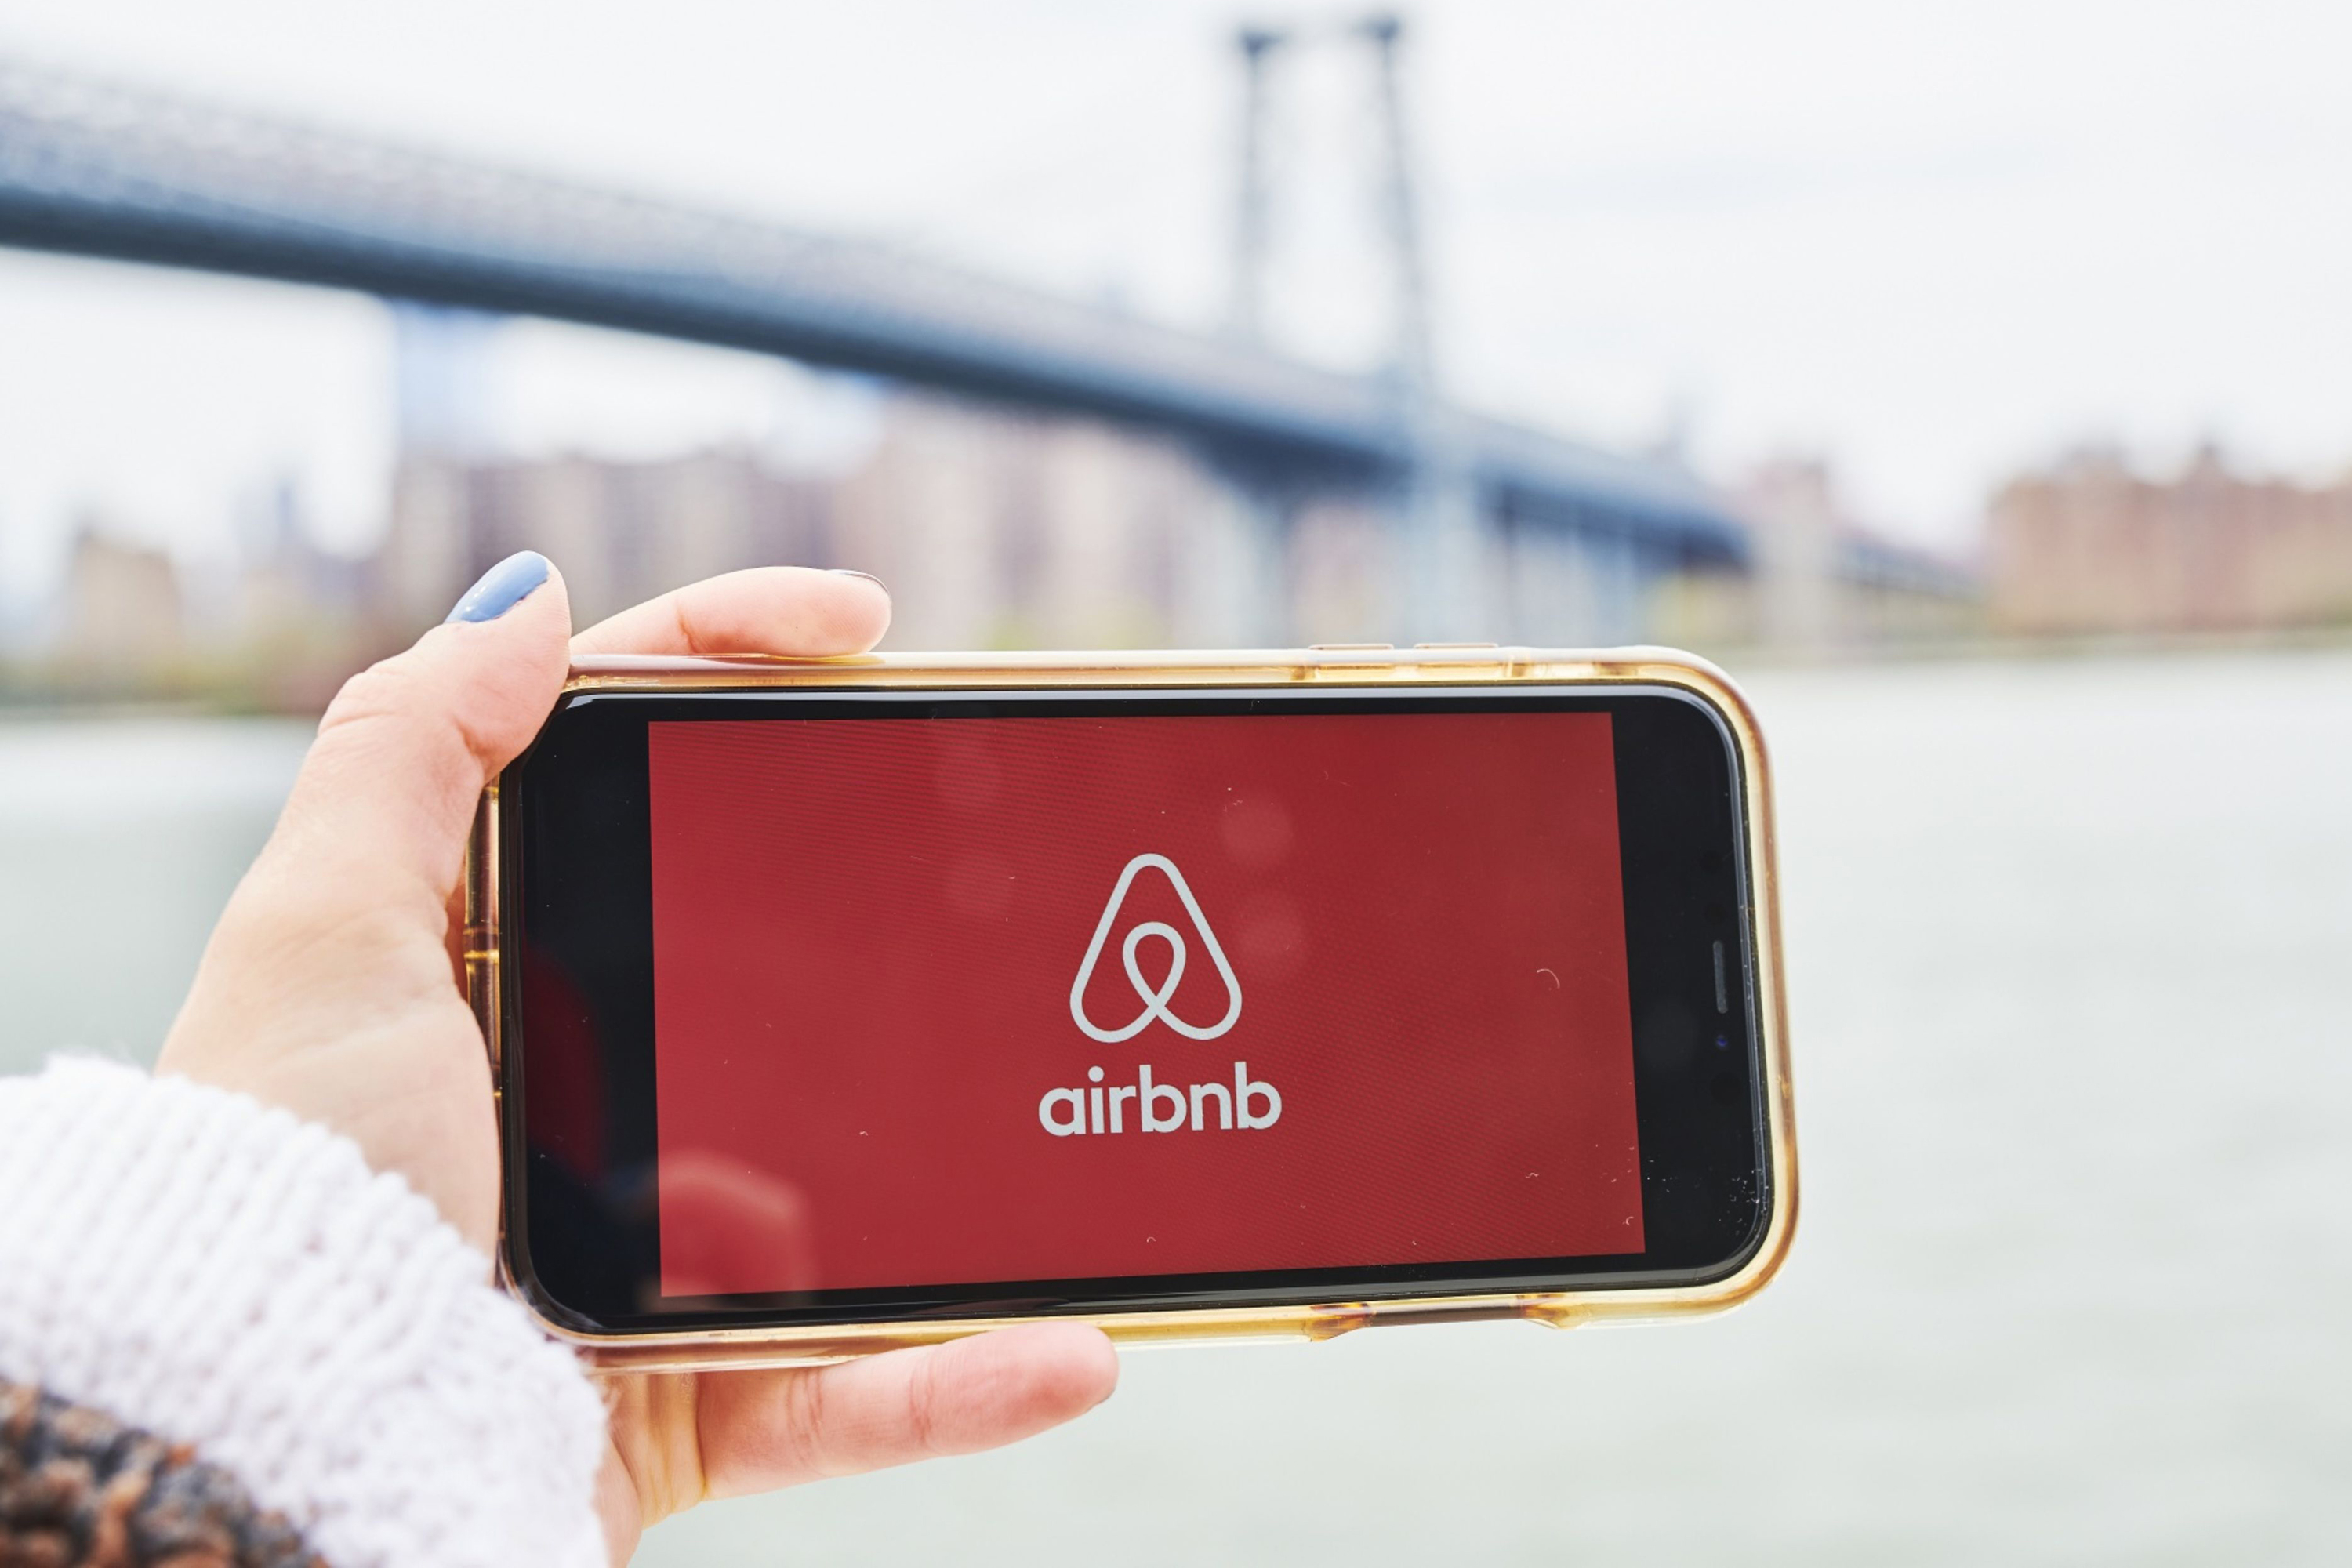 Airbnb hires Droga5 as shares surge on IPO, Disney+ debuts movies: Friday Wake-Up Call